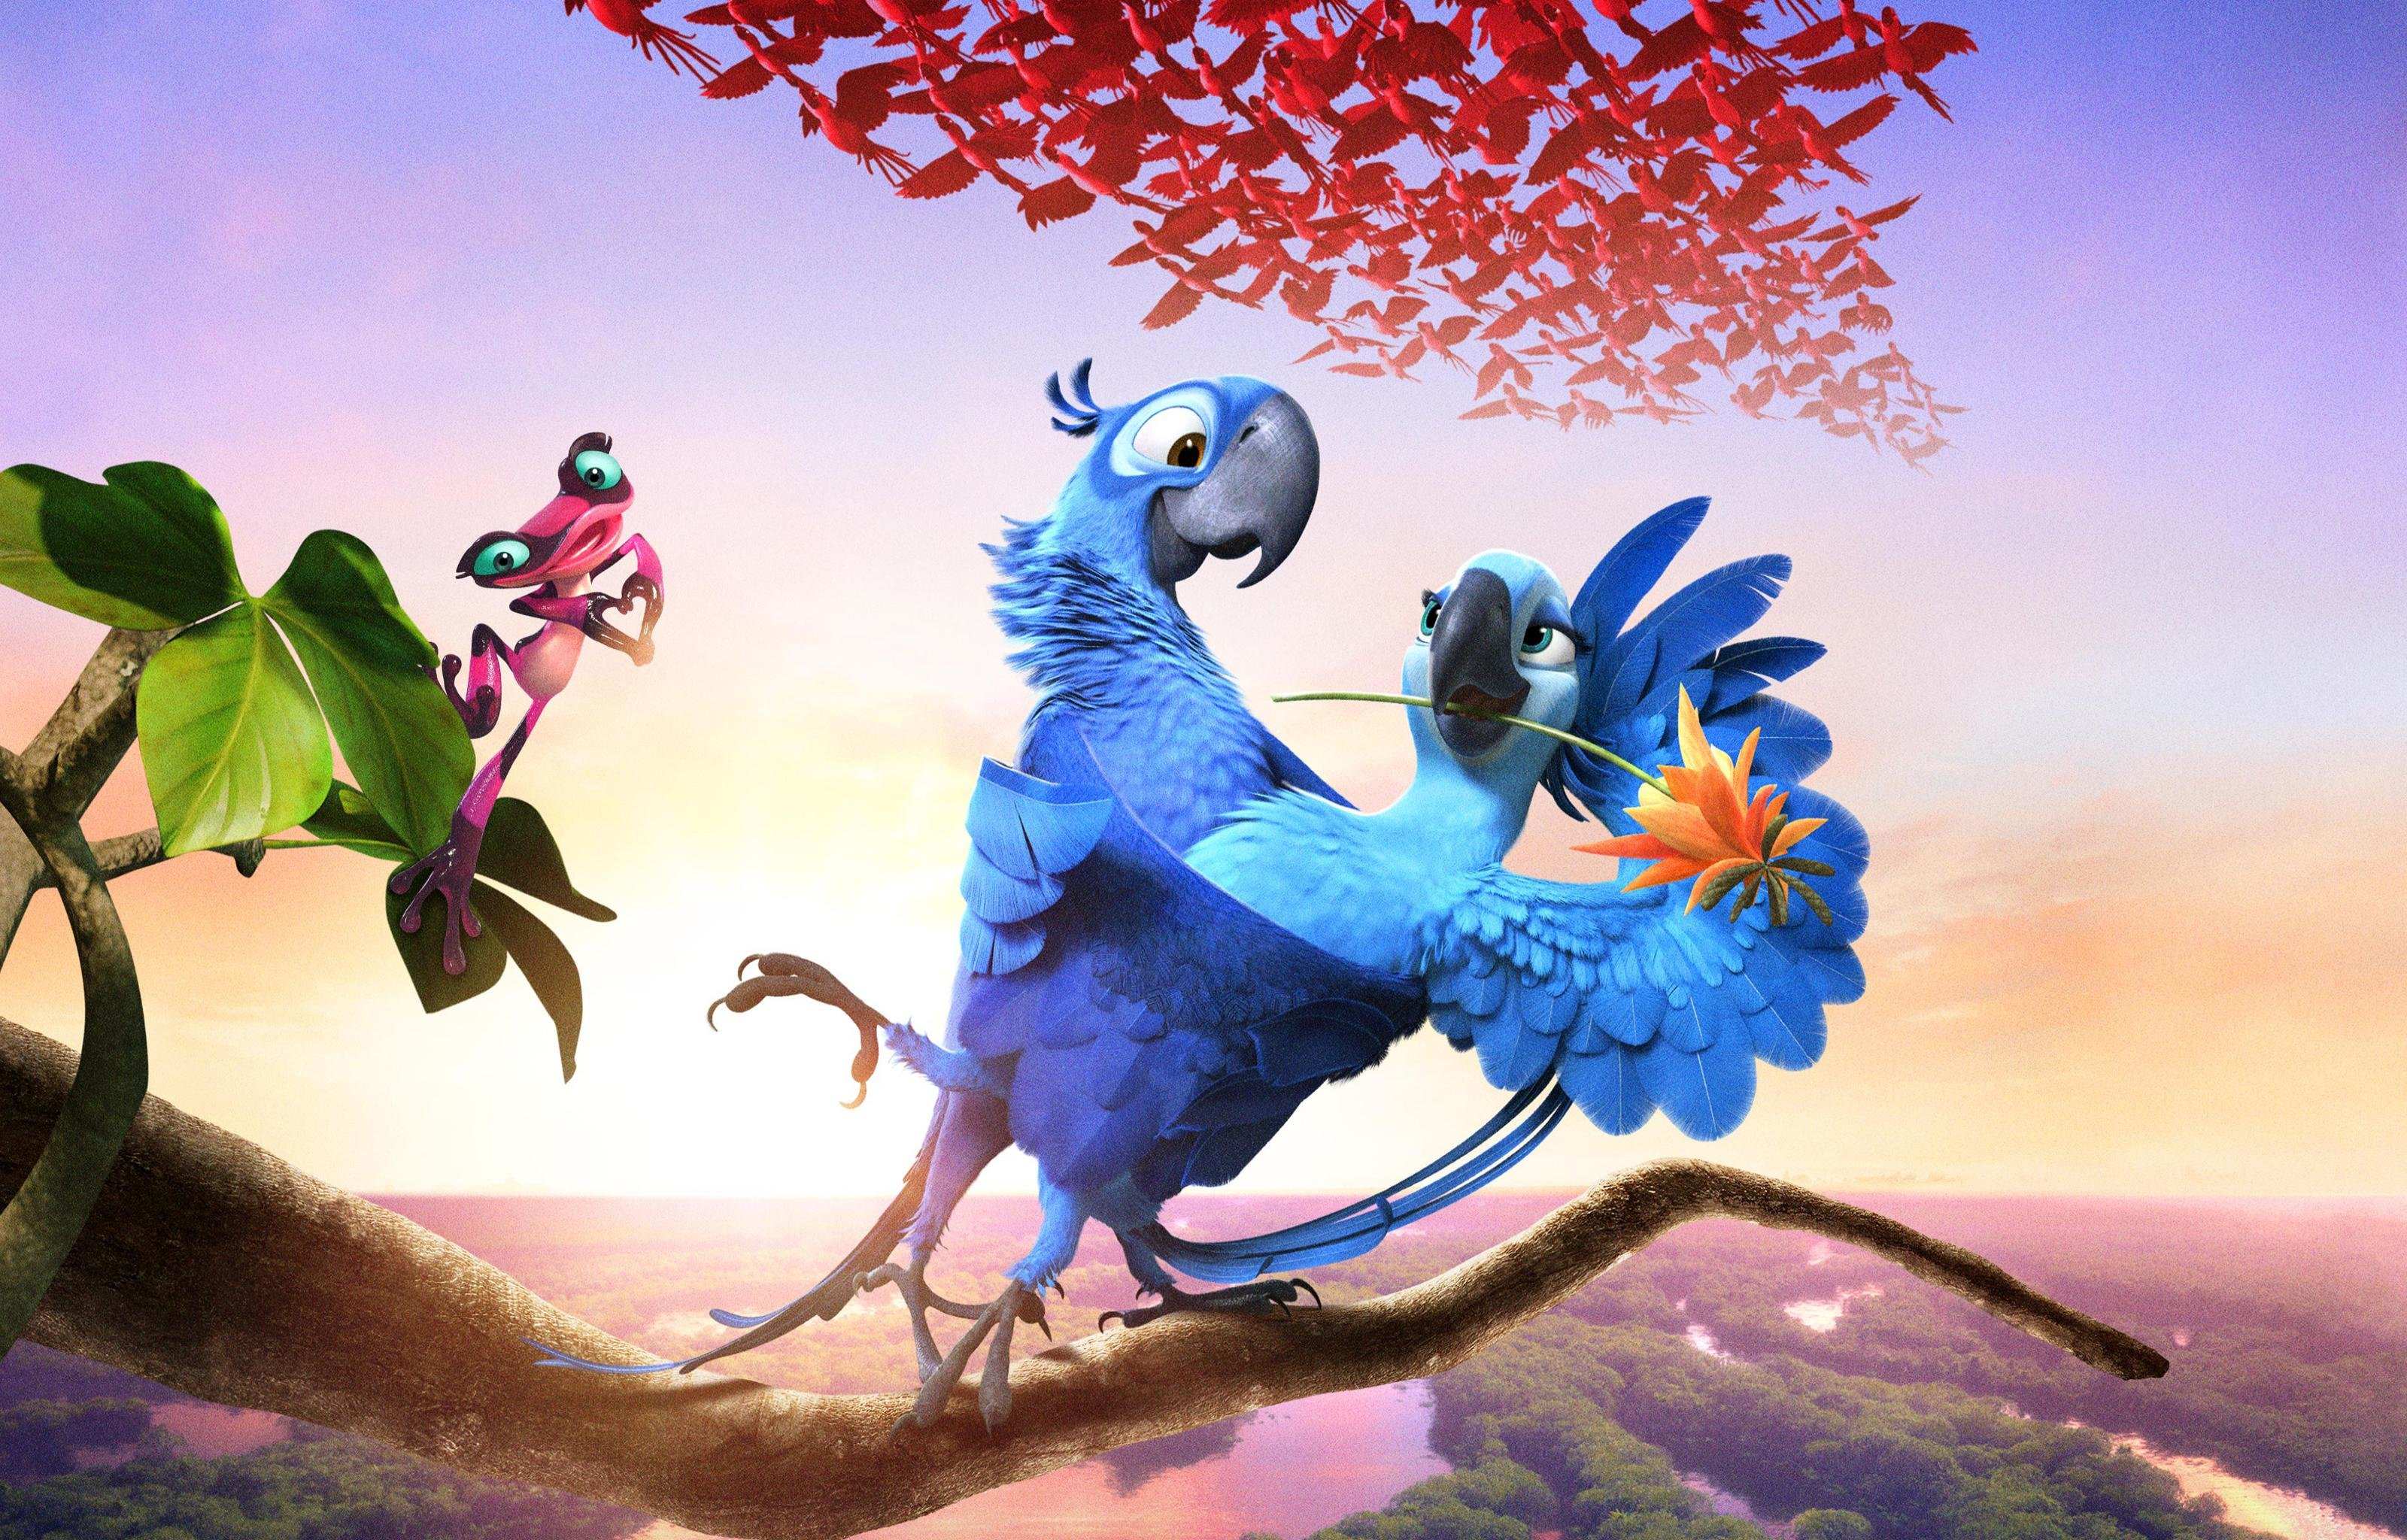 download hd 3200x2048 rio 2 computer wallpaper id:307569 for free